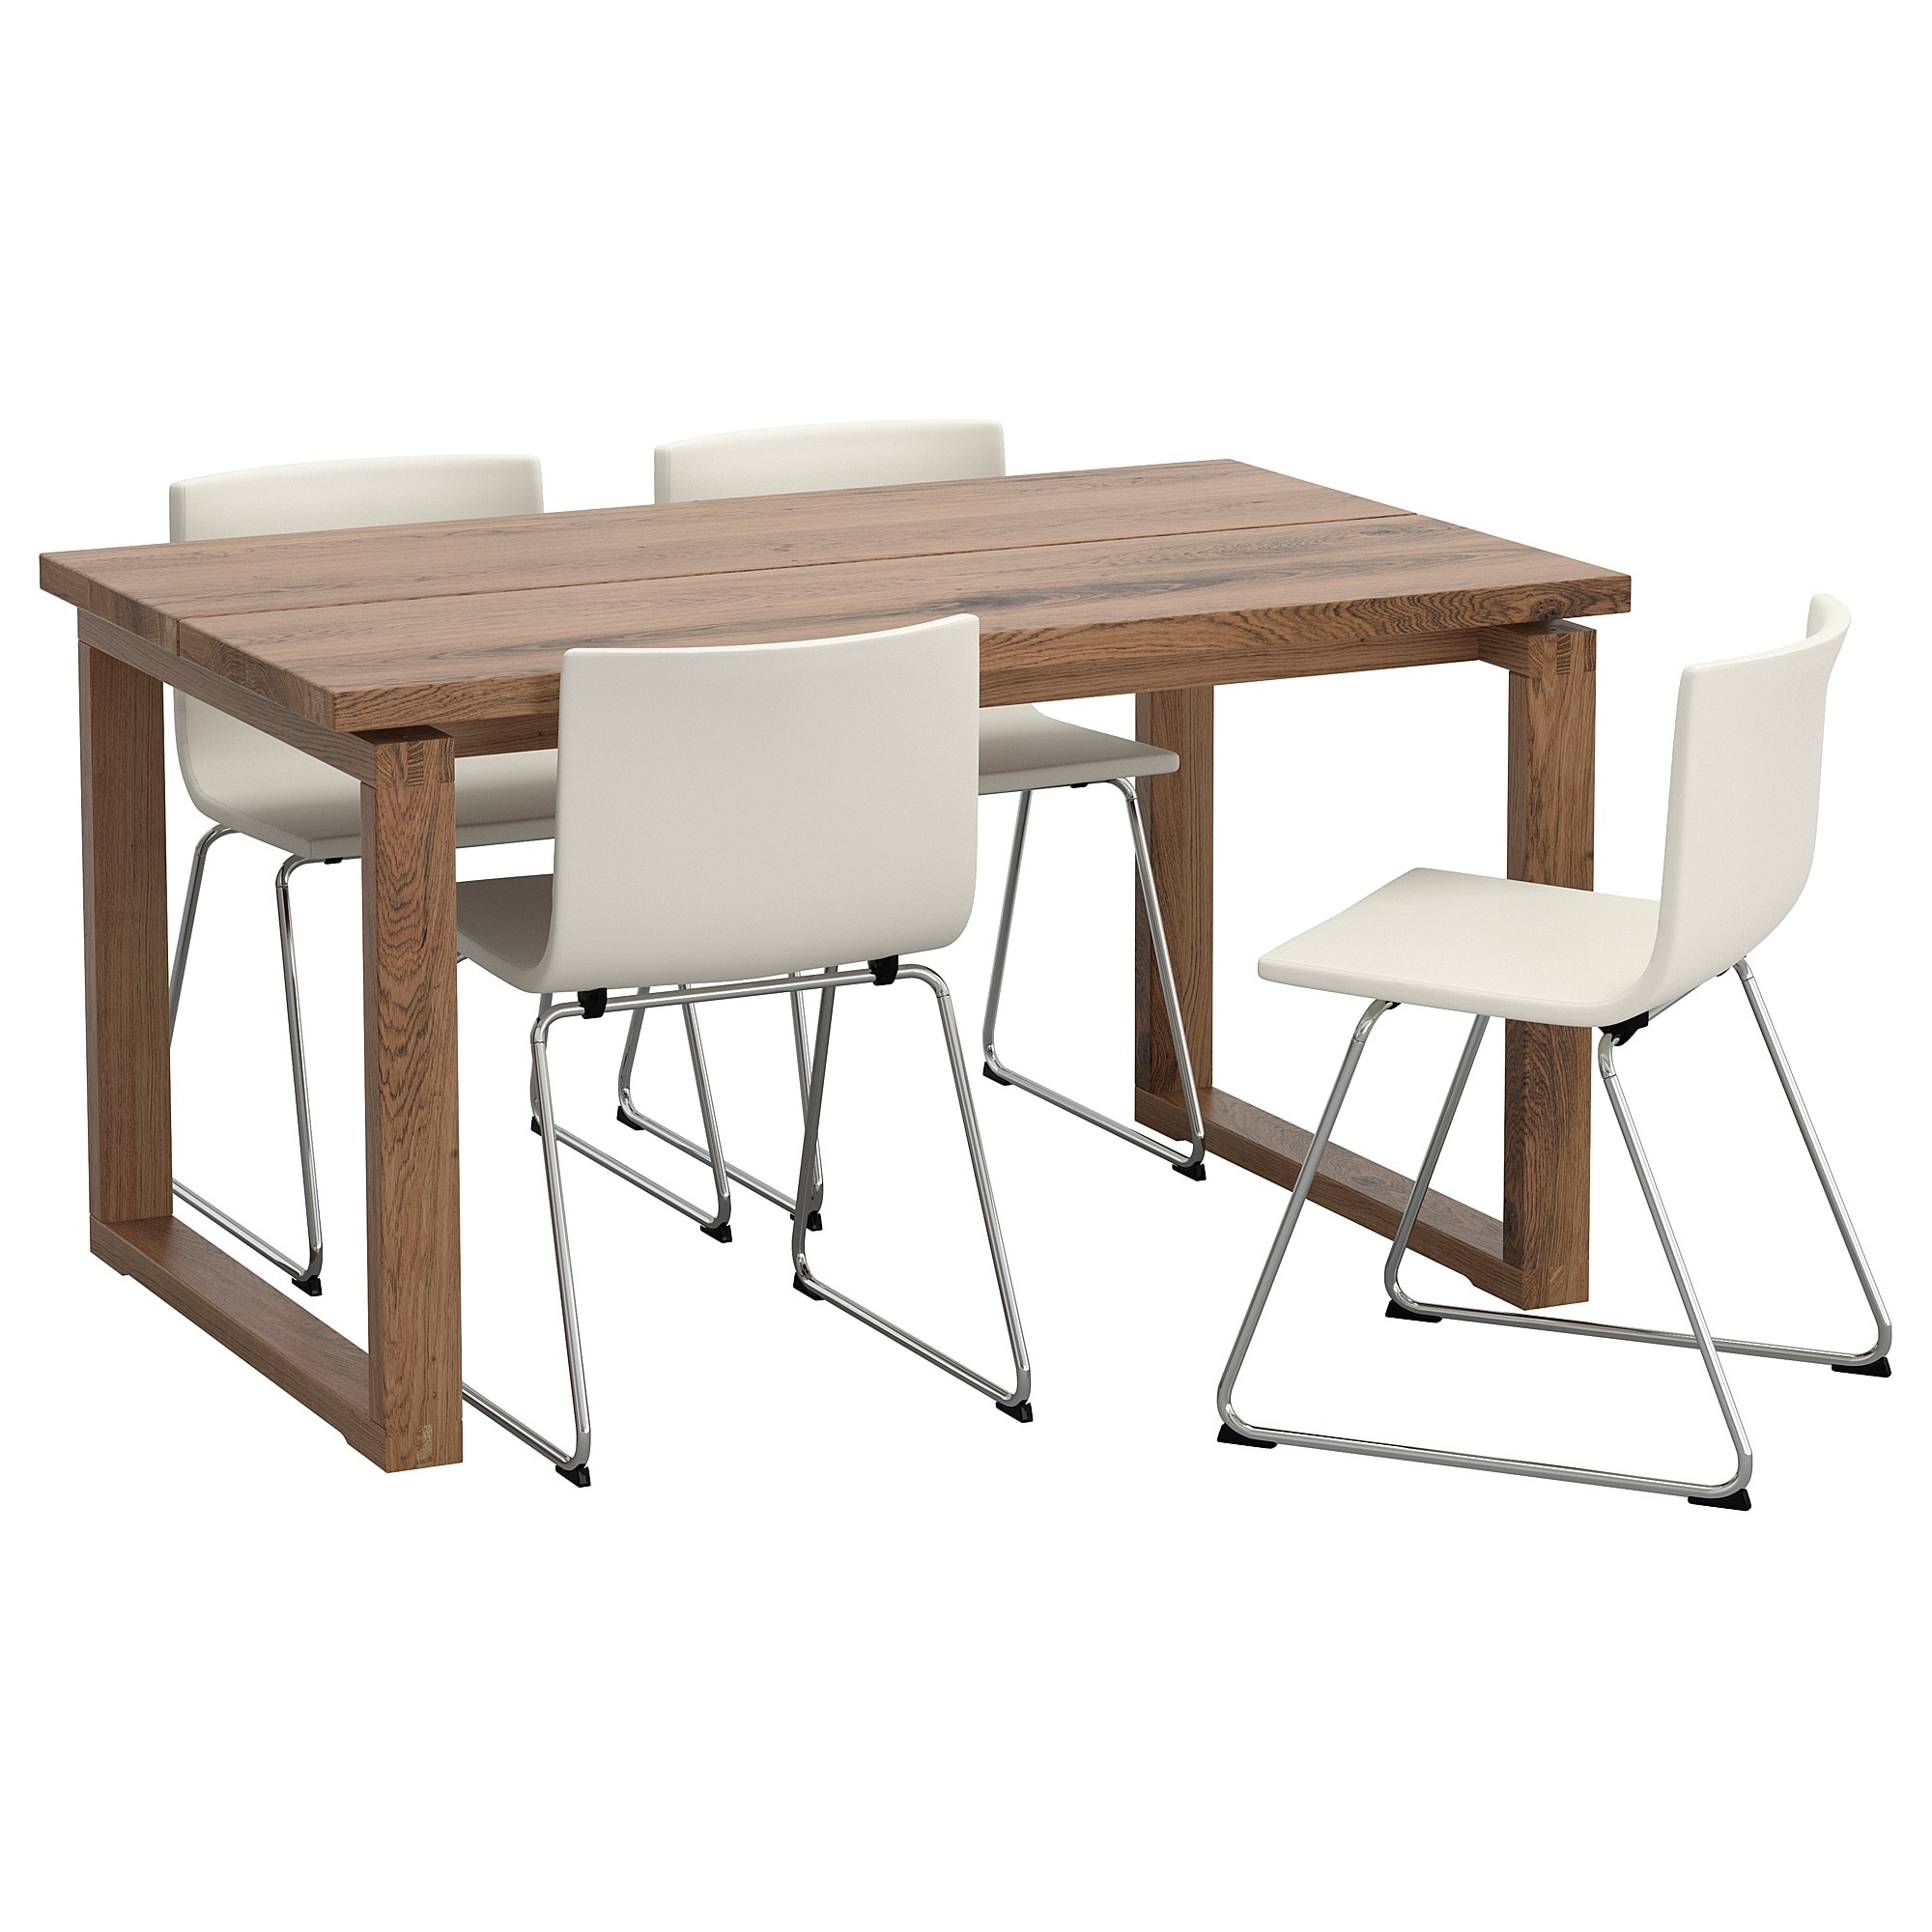 Ikea throughout Compact Dining Tables